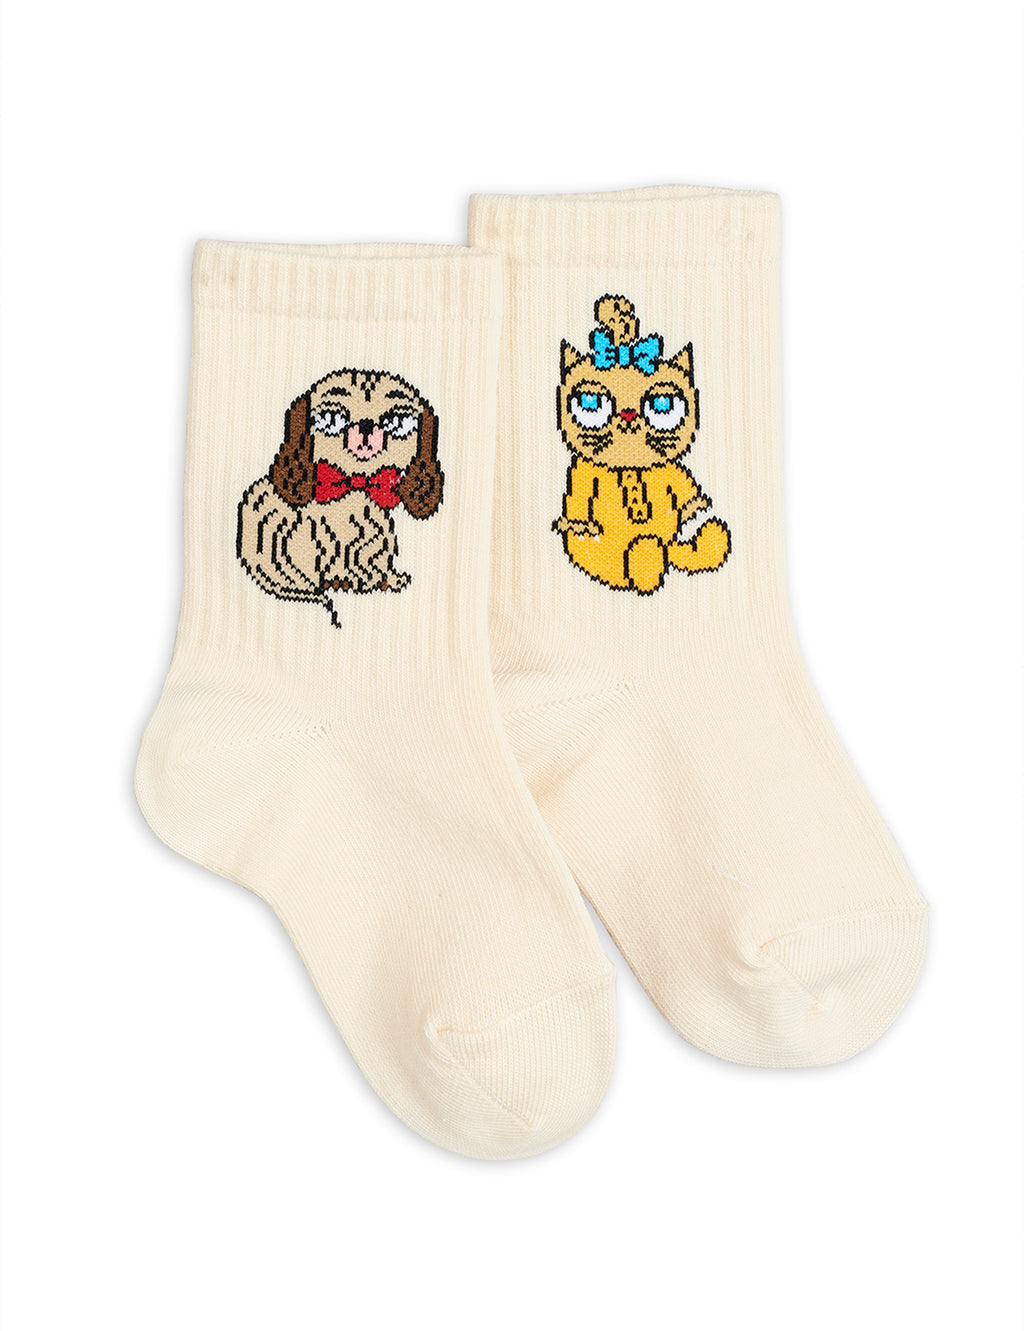 Girls and boys ivory socks made with soft organic cotton. One sock has a yellow cat motif, and the other has a brown dog. Both classic avatars of the children clothes' designer Mini Rodini